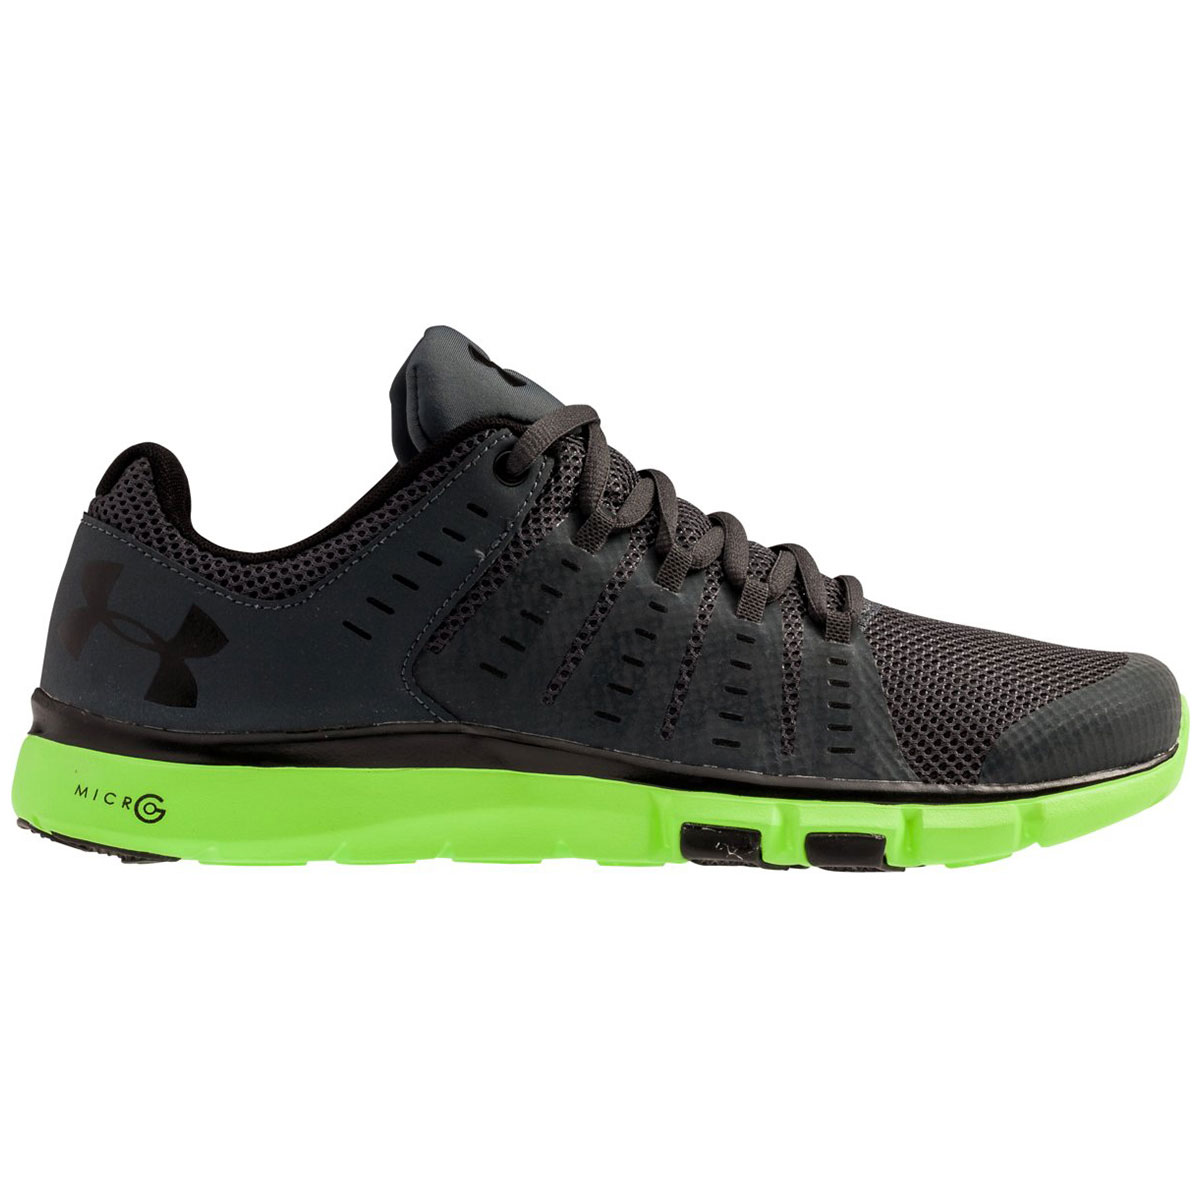 ae7e6dd1f453 green under armour cleats cheap > OFF55% The Largest Catalog Discounts